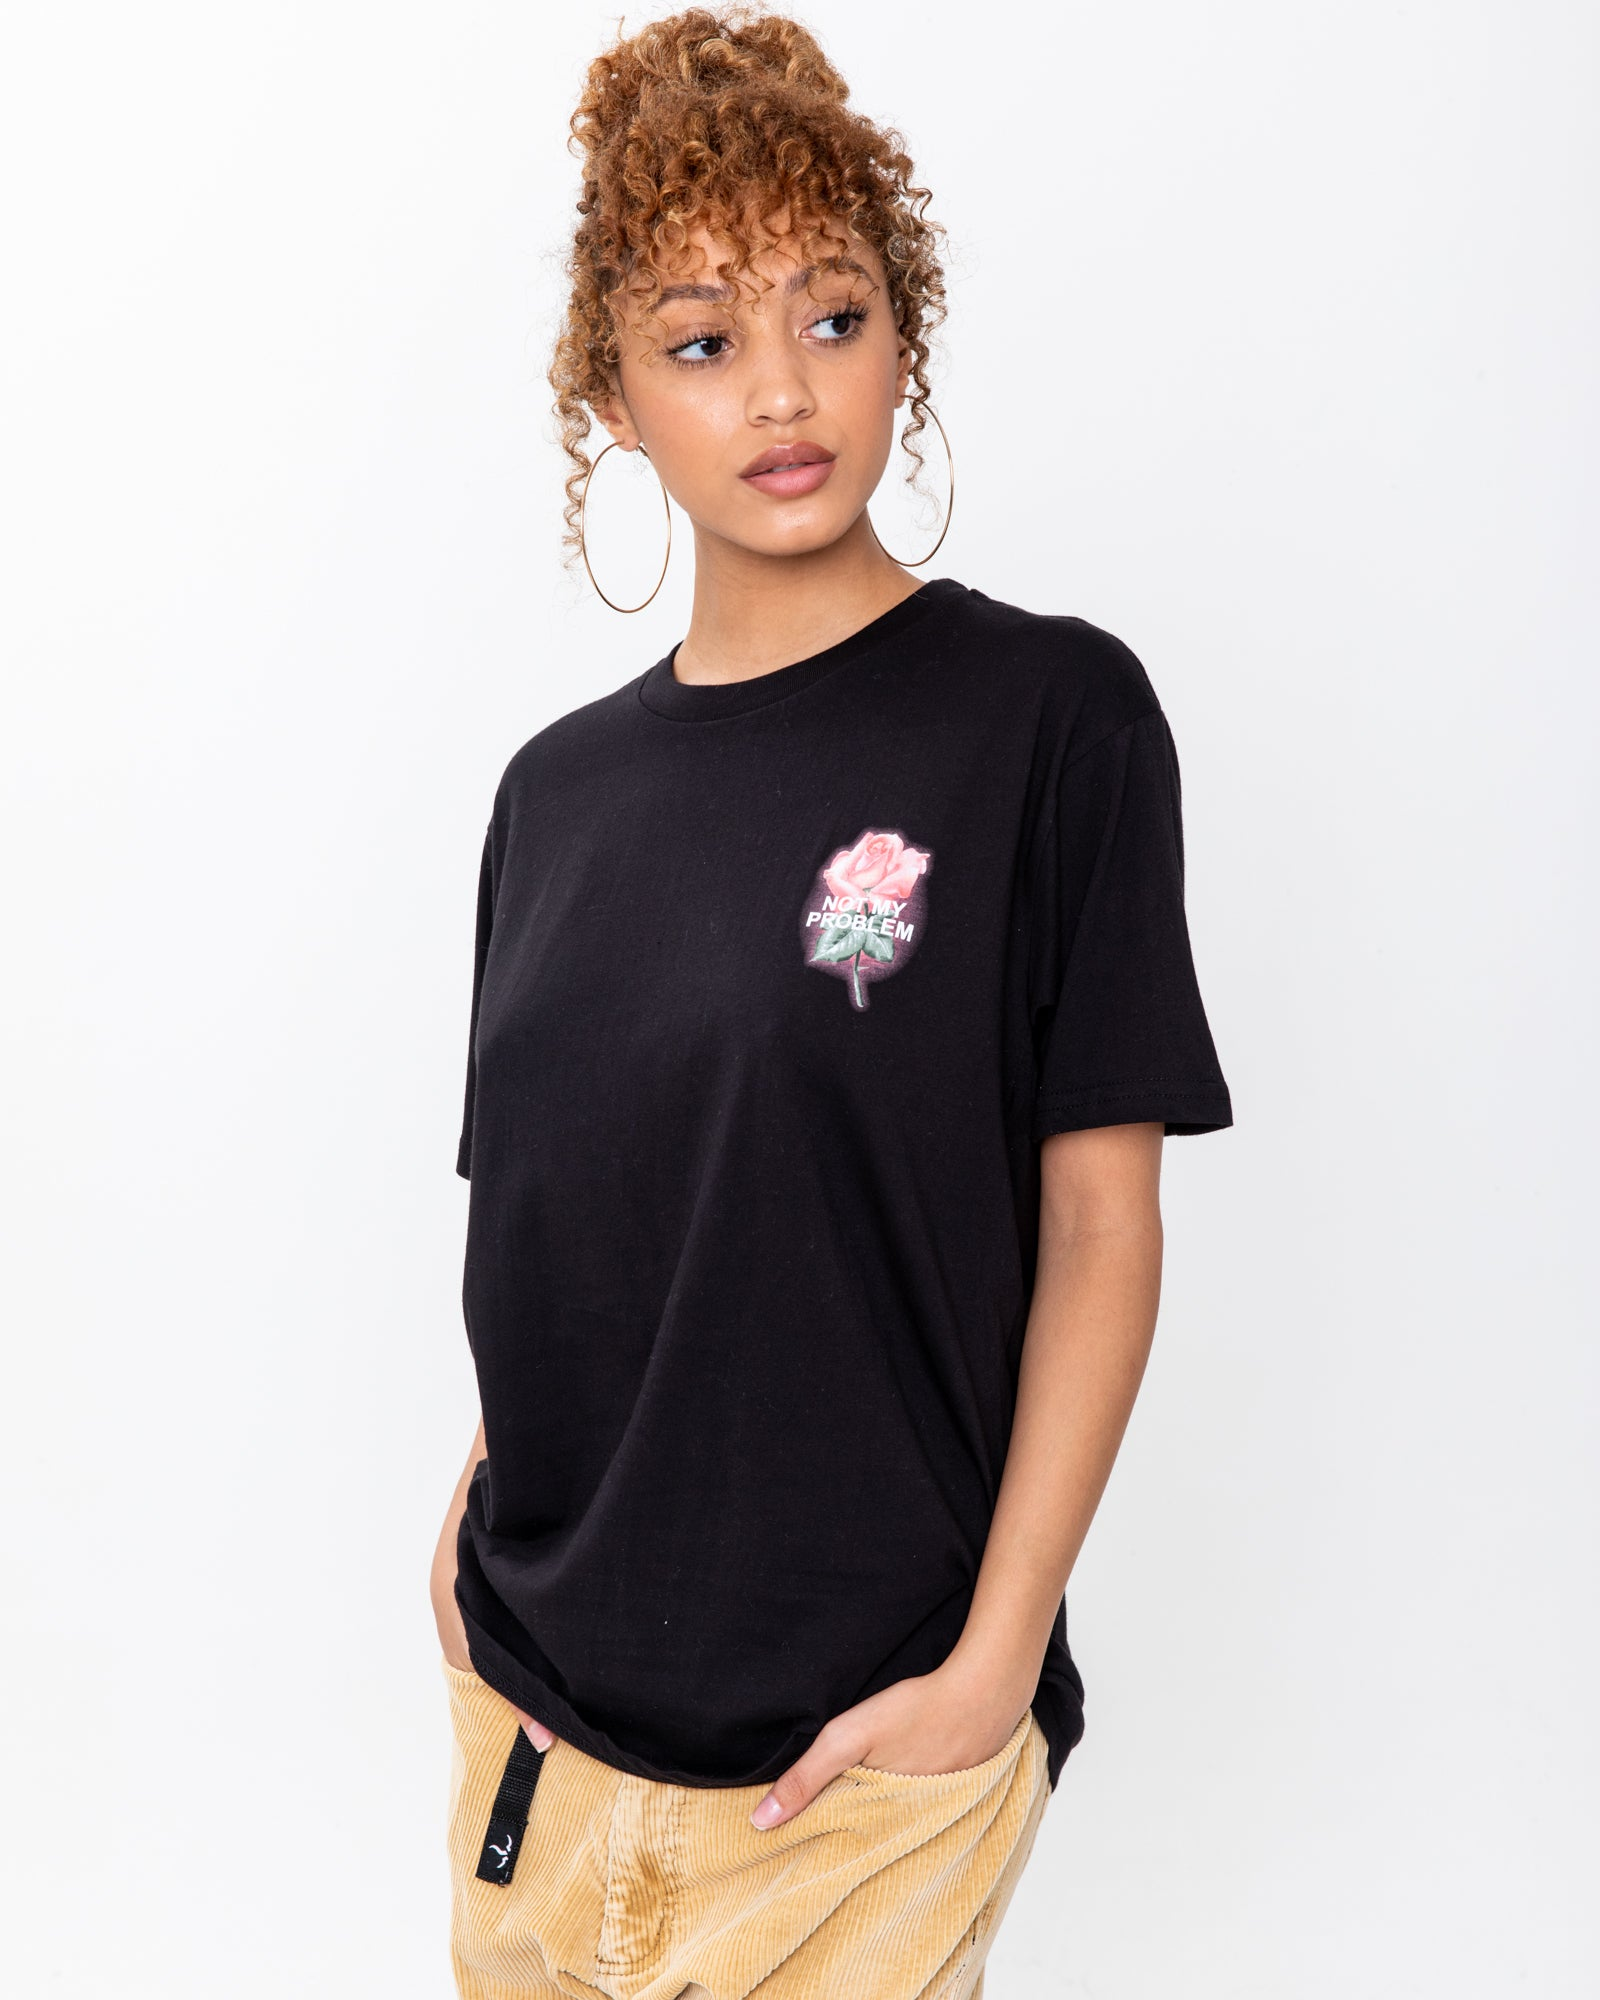 Not My Problem Black Tee